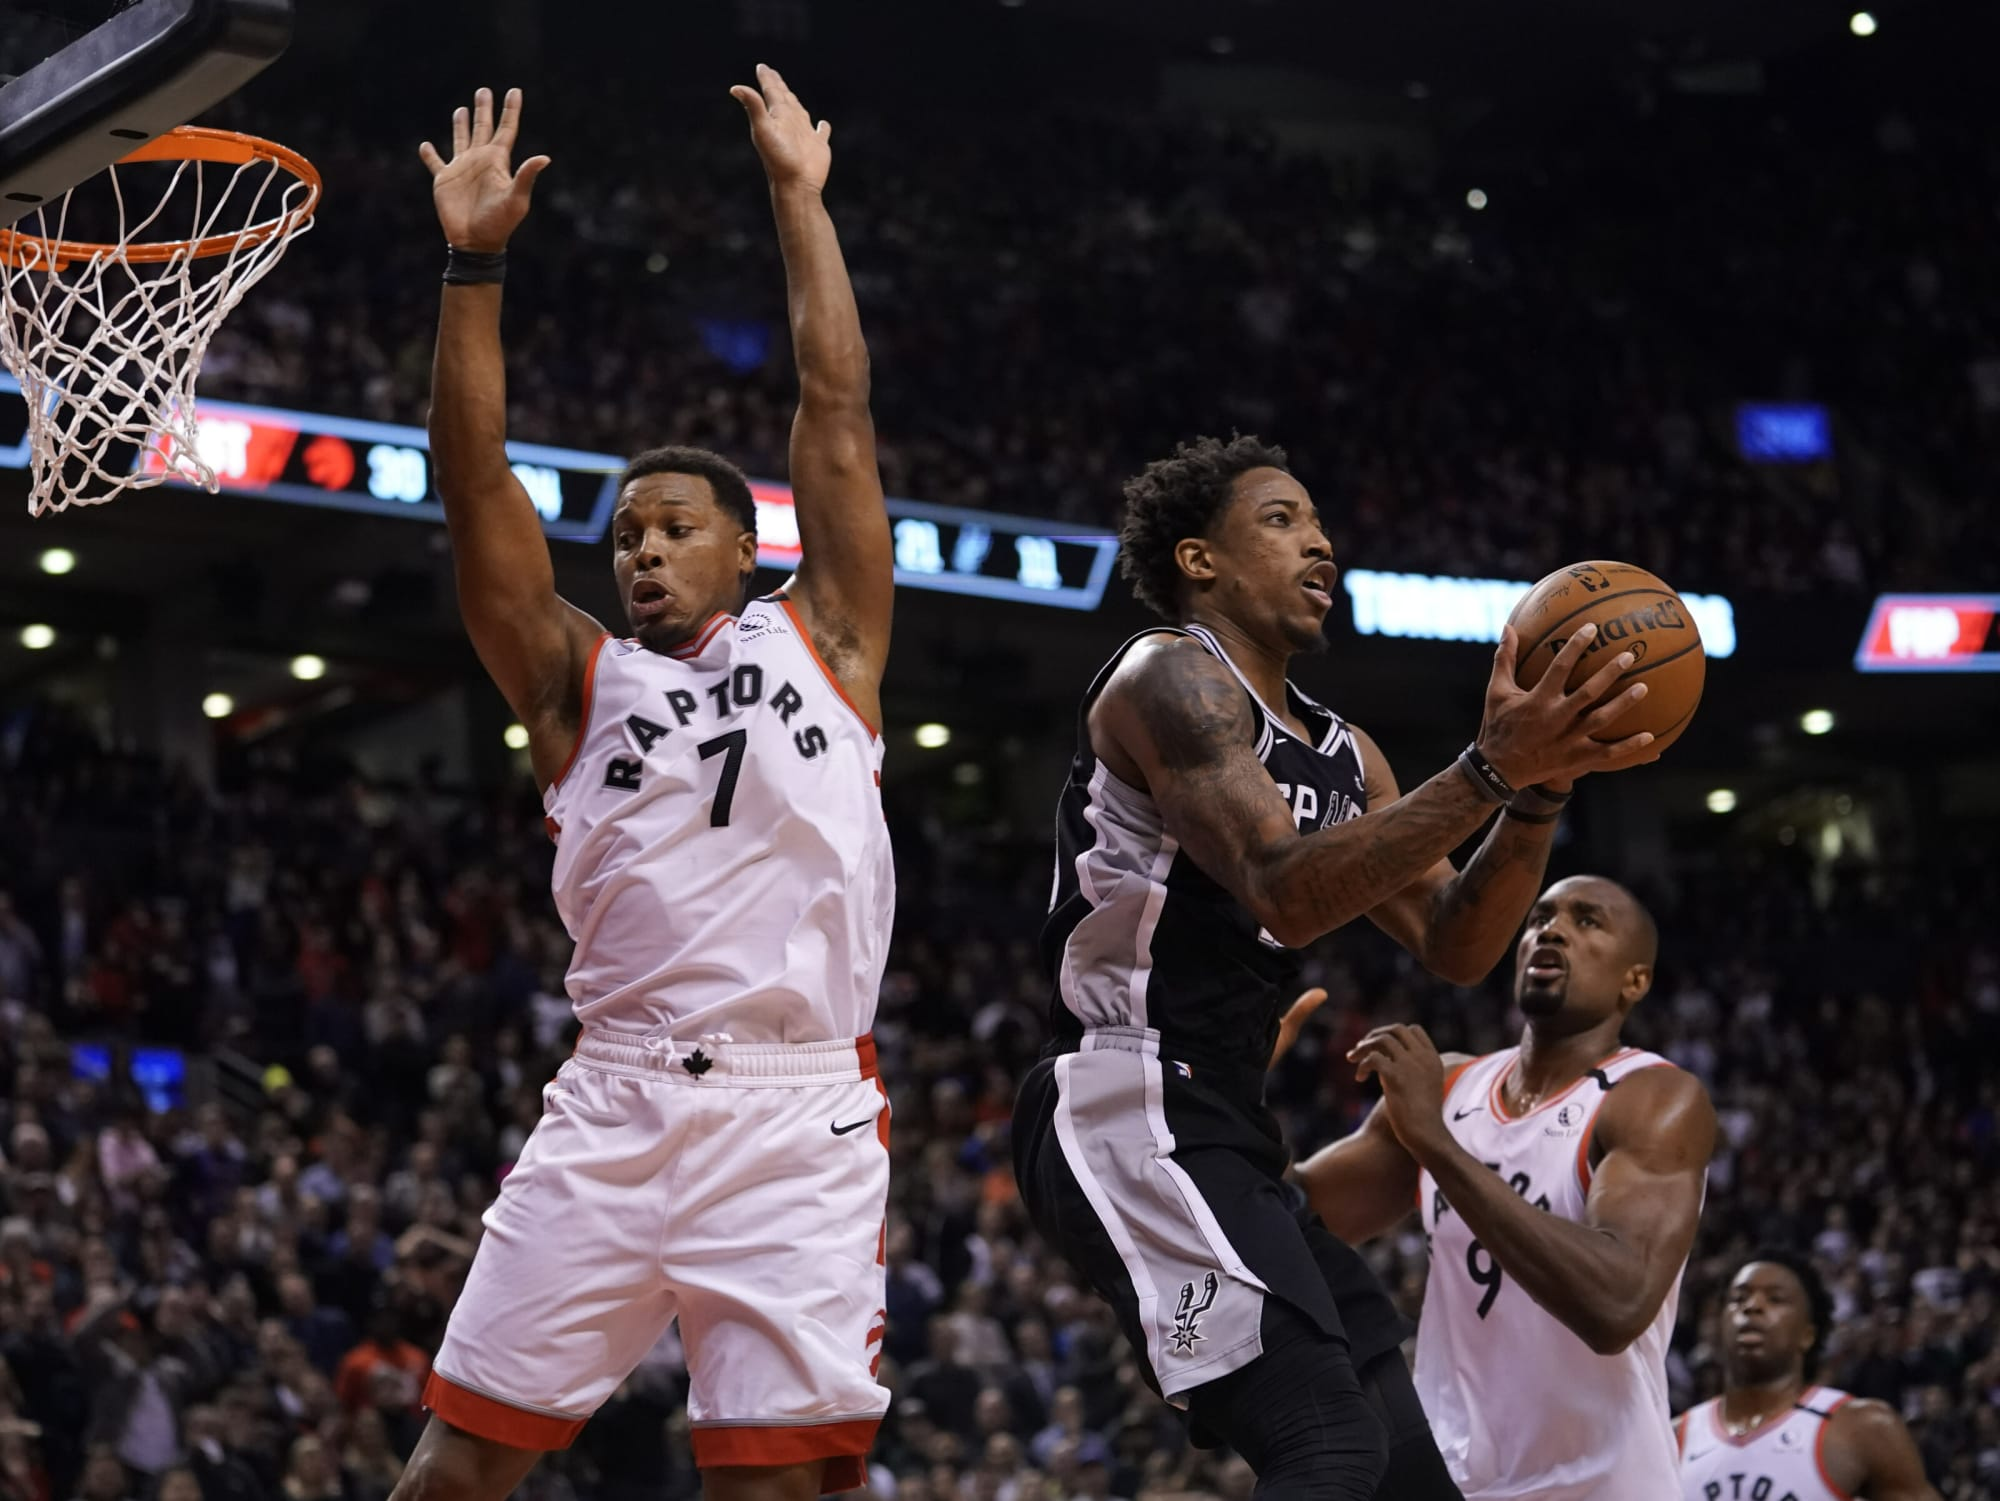 Lakers Rumors: Reality of signing Kyle Lowry and DeMar Derozan